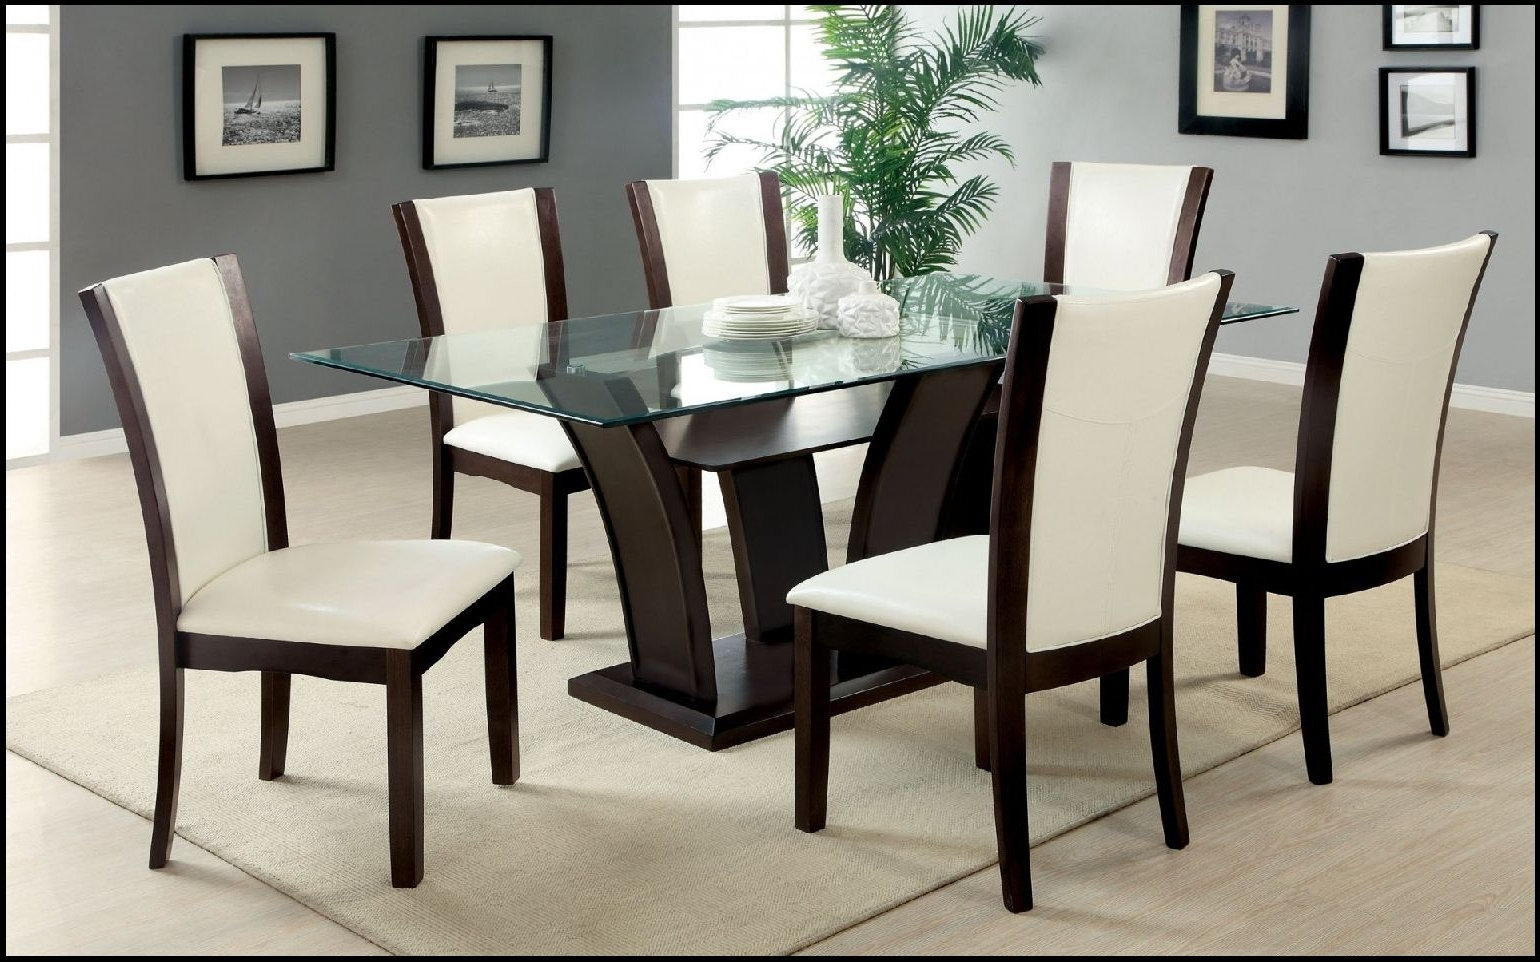 Recent Best 6 Chair Glass Dining Table Set With Folding Dining Table And 6 Throughout Black Glass Dining Tables With 6 Chairs (View 21 of 25)